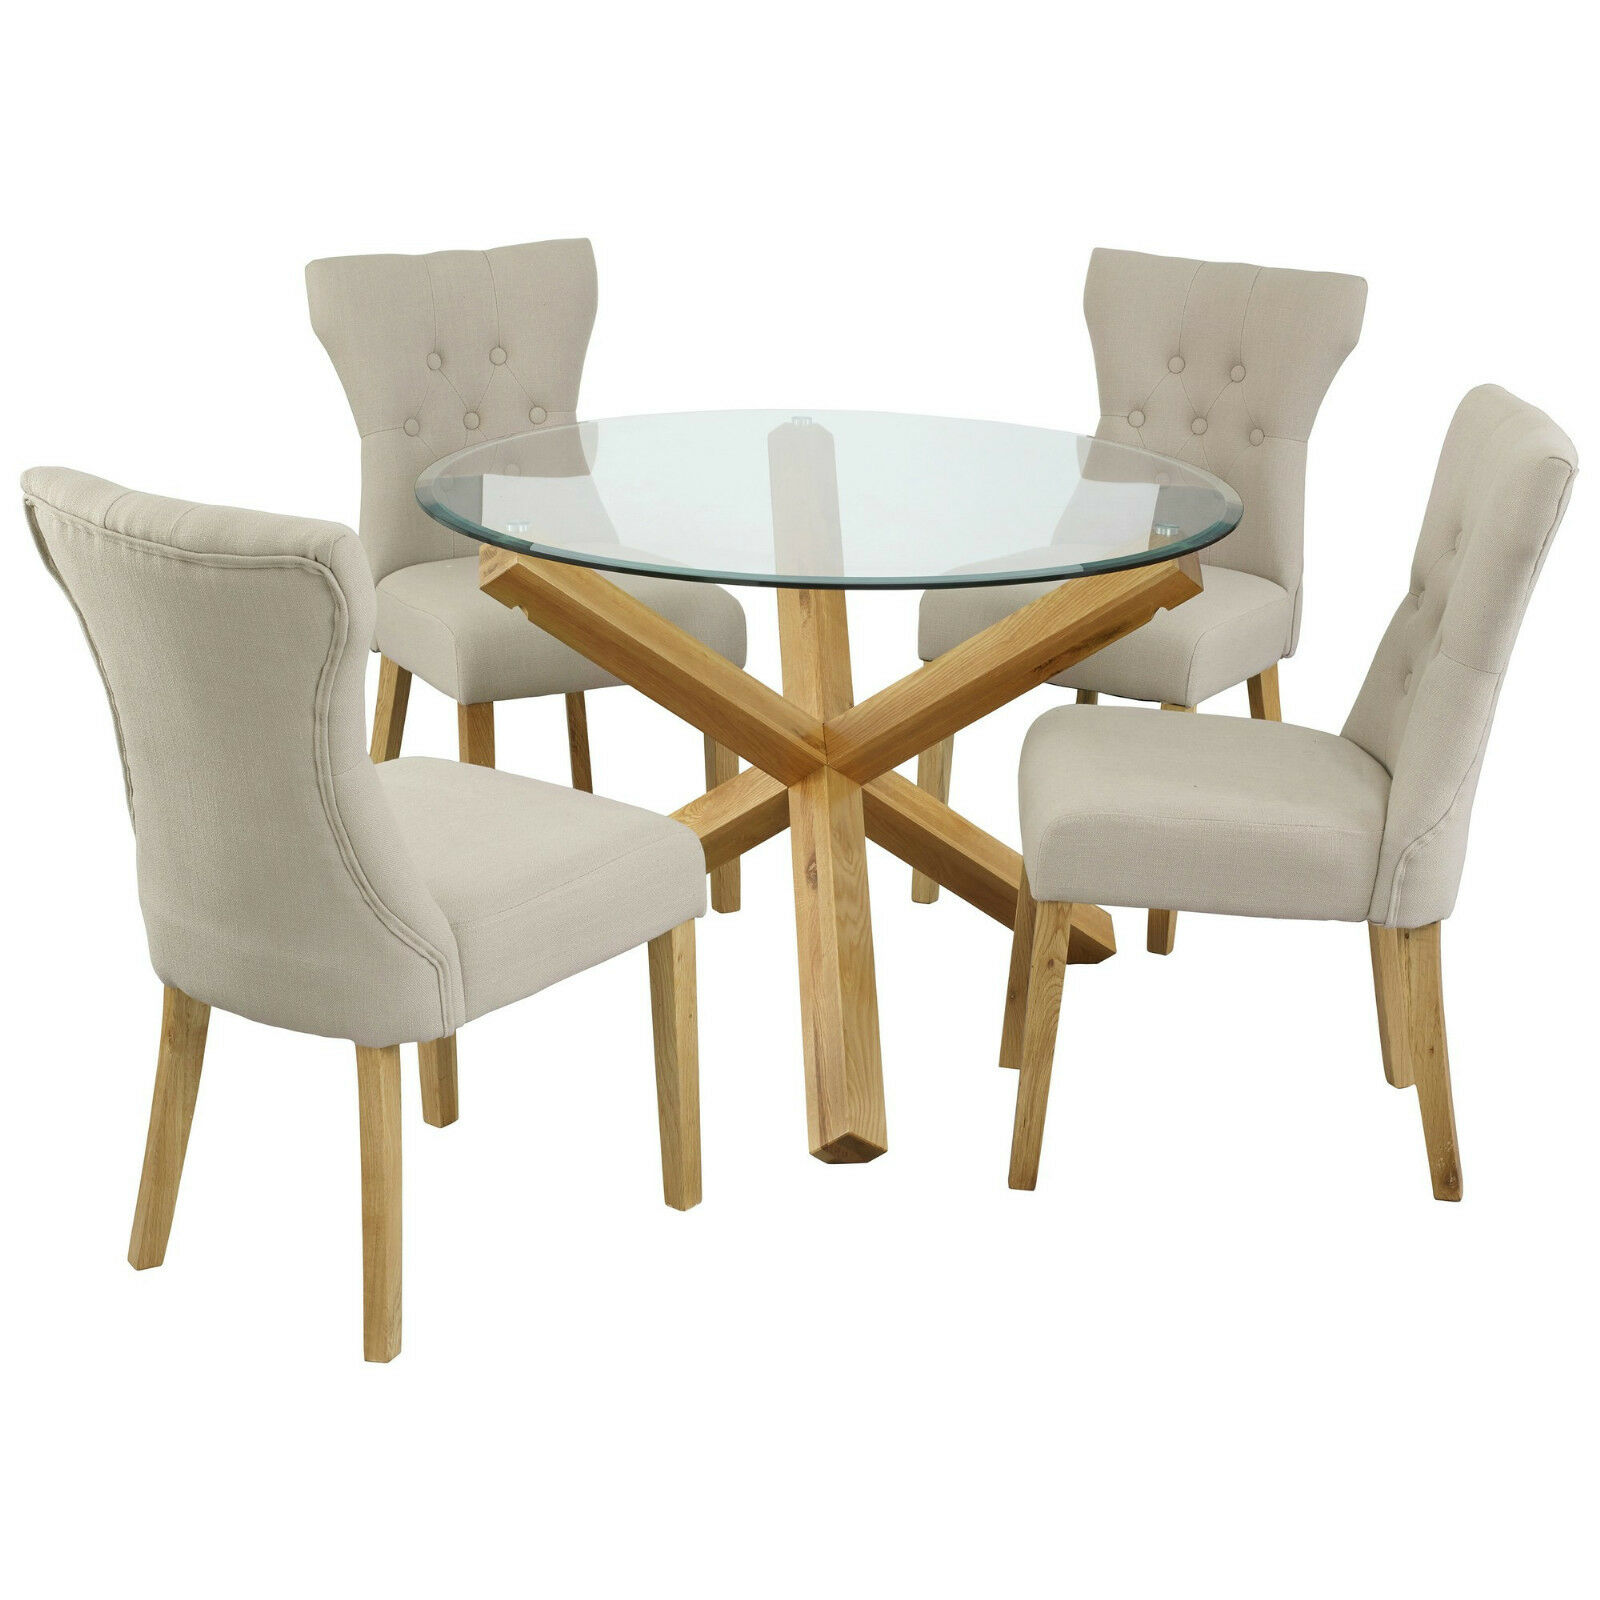 Oporto Saturn Solid Oak and Glass Dining Table Round  : Oporto Saturn Solid Oak and Glass Dining Table from picclick.co.uk size 1600 x 1600 jpeg 171kB